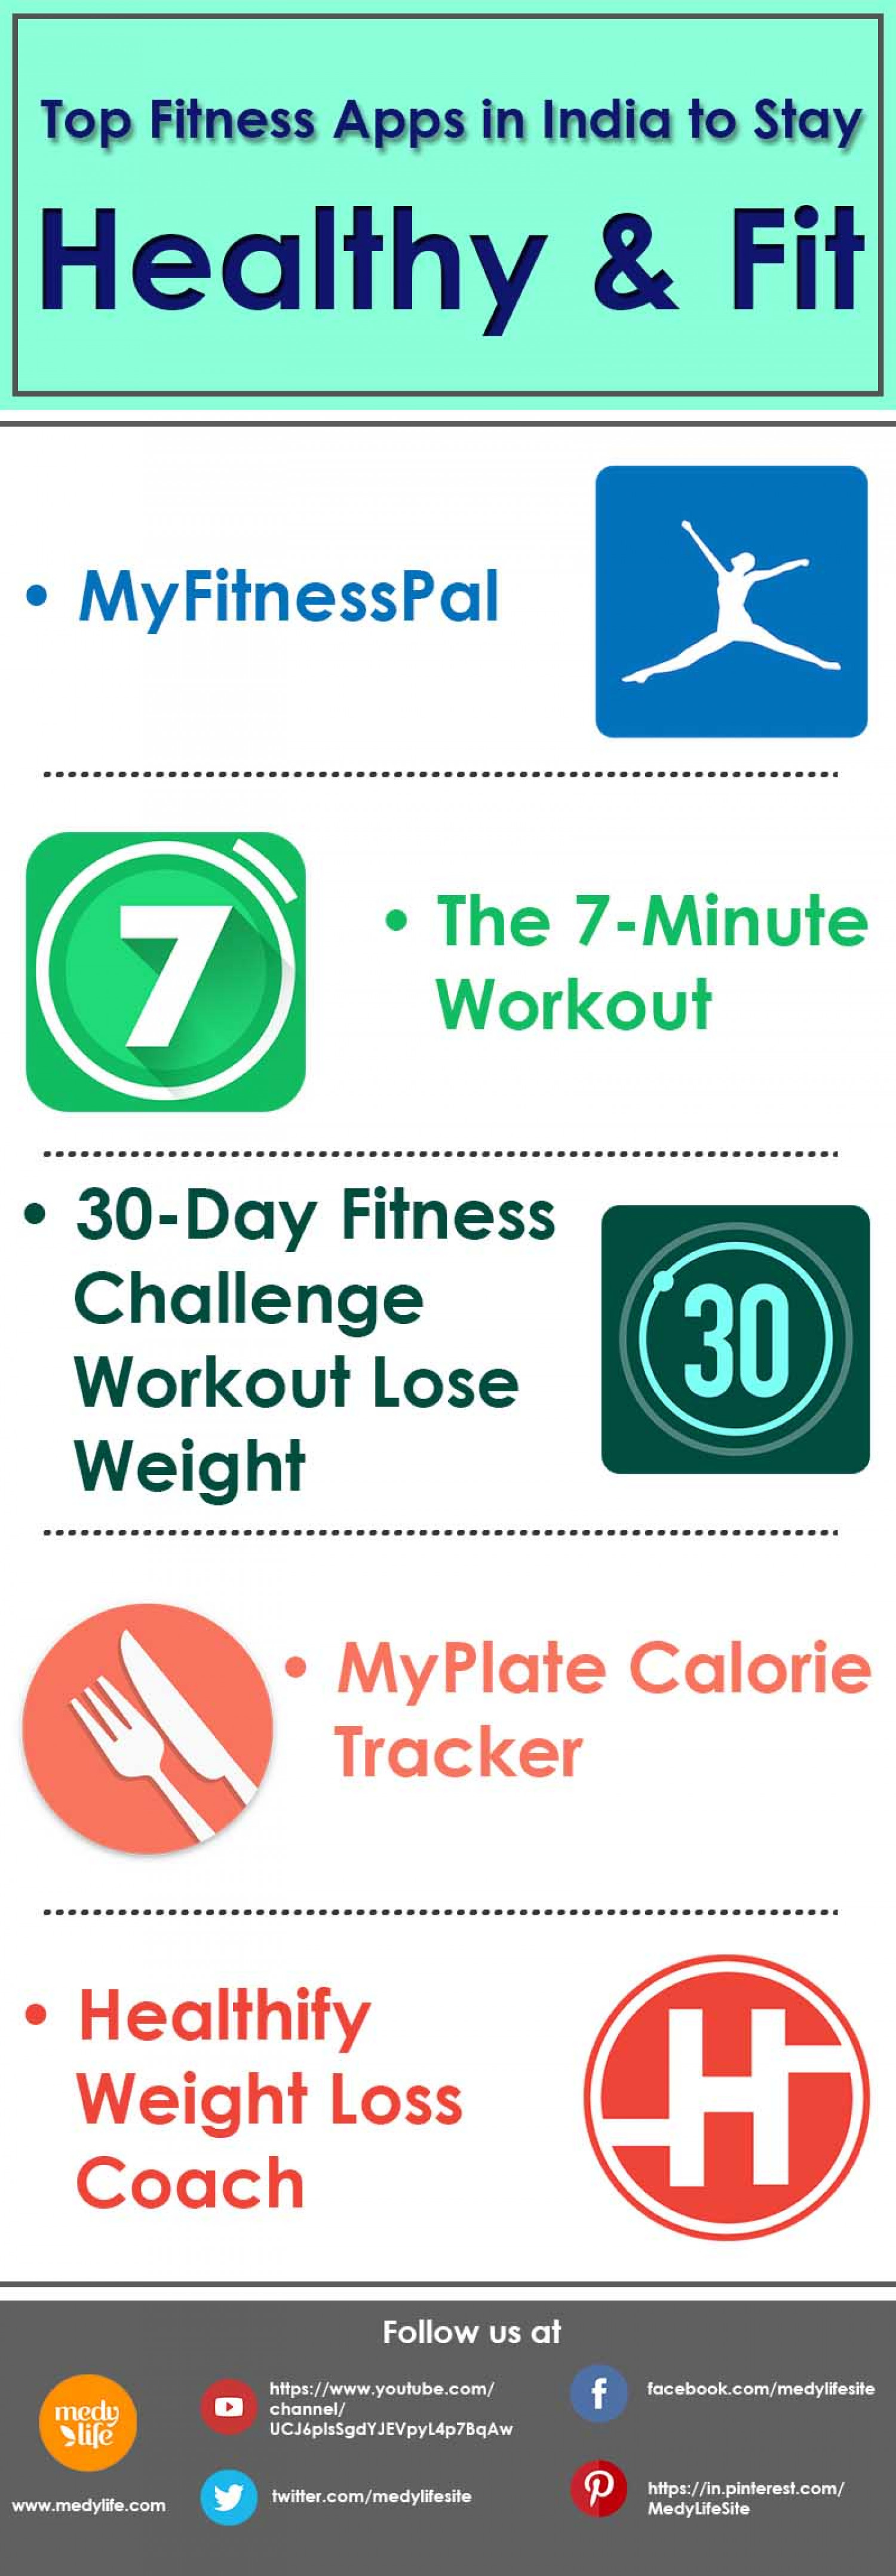 Top Fitness Apps in India to Stay Healthy & Fit Infographic